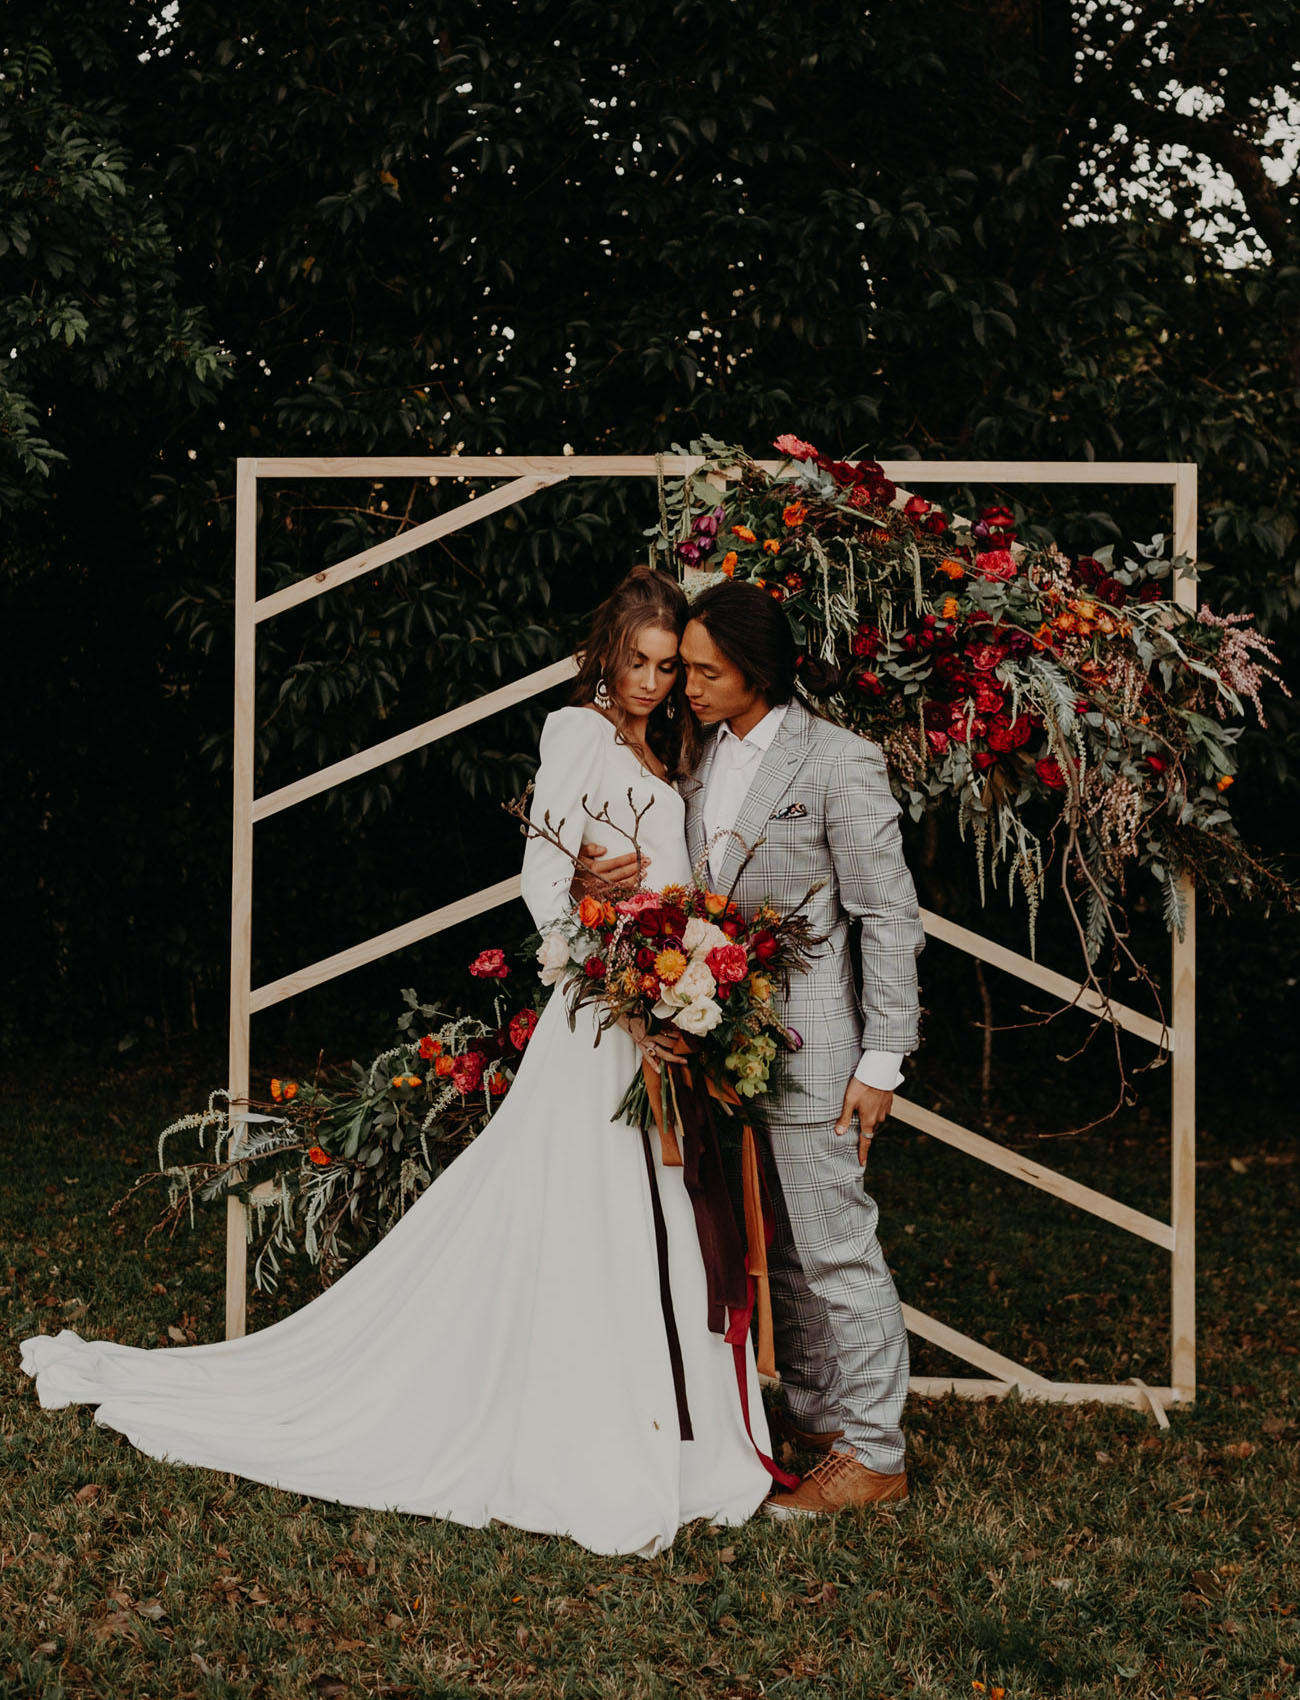 DIY wedding backdrop inspiration